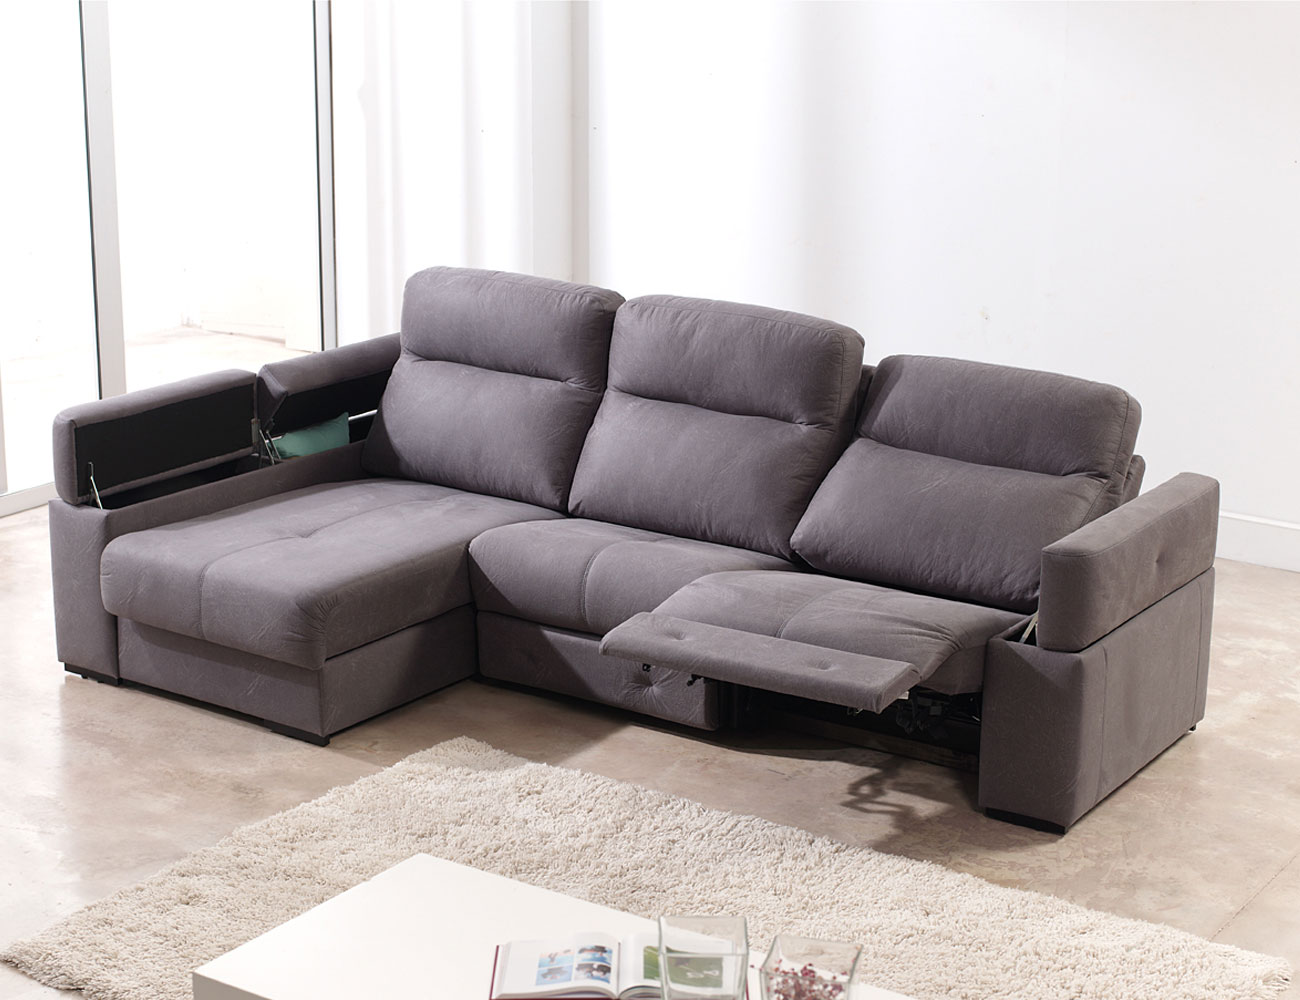 Sofa chaiselongue relax motor electrico 3 arcon 17